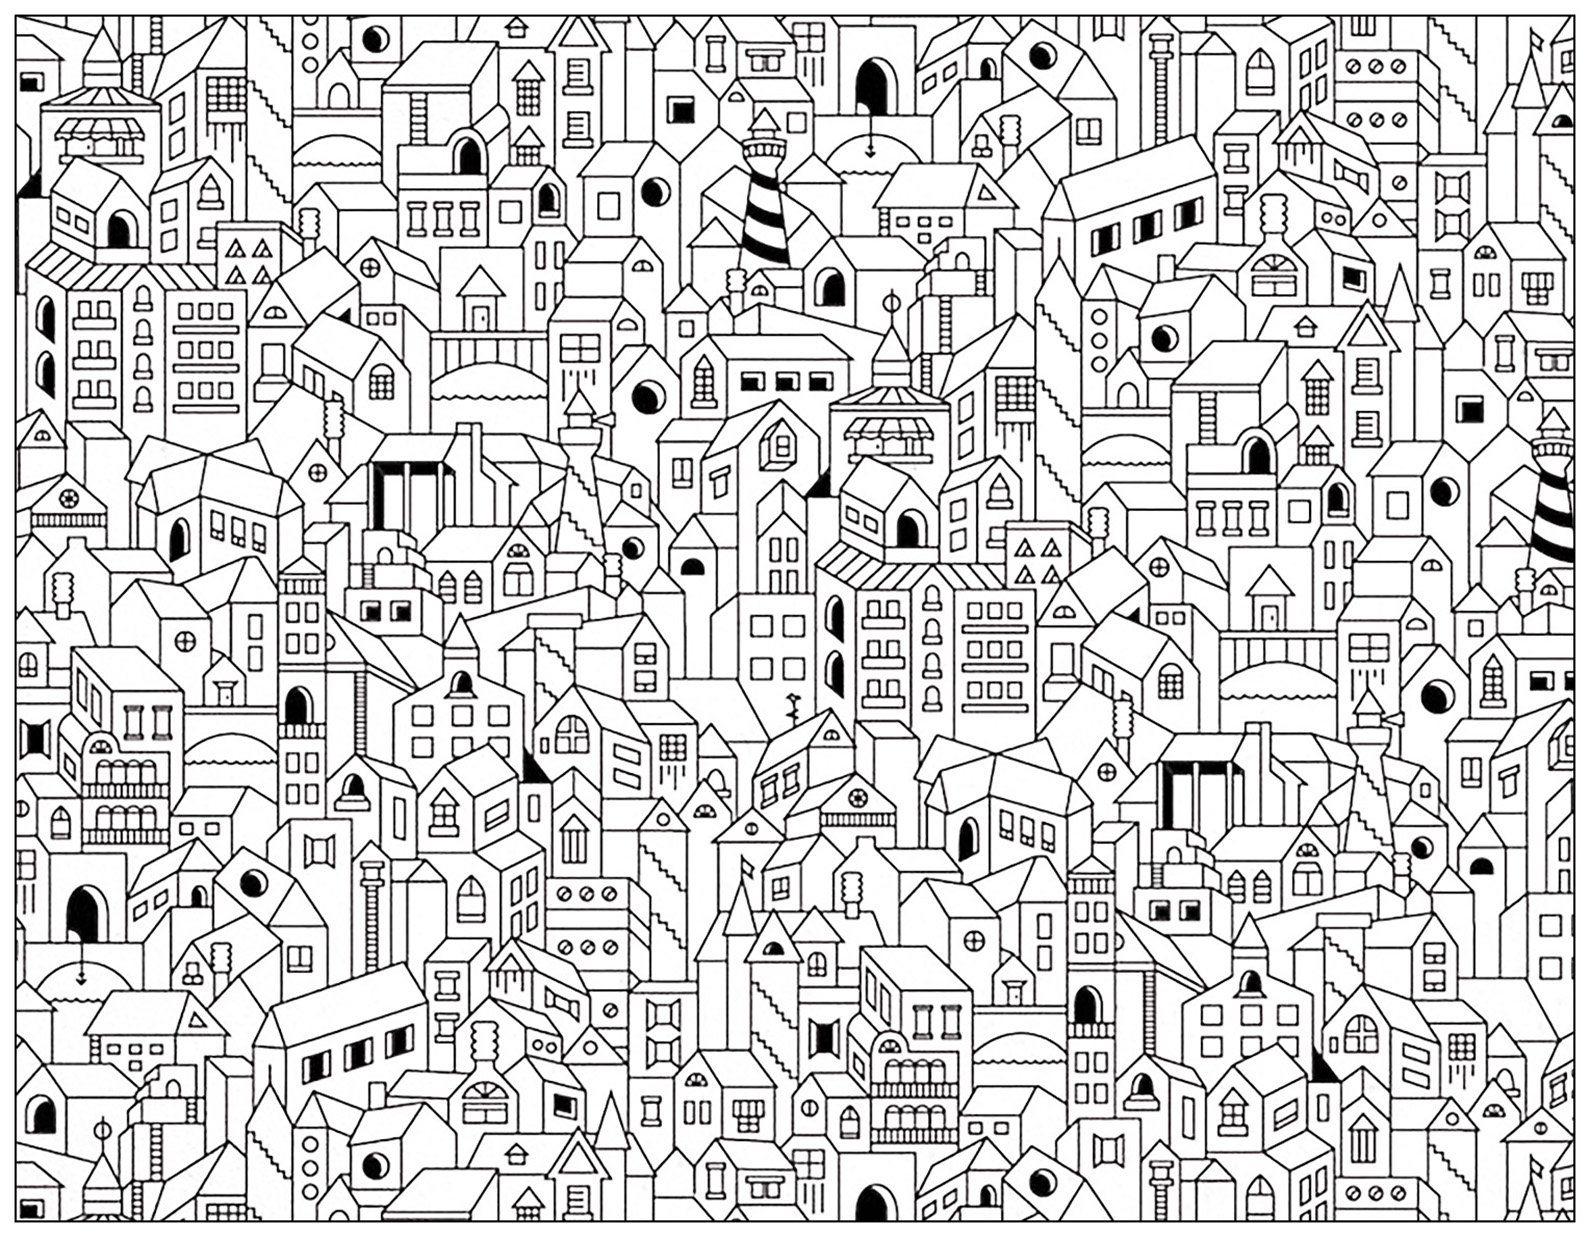 City Buildings DoodleFrom the gallery : Doodling / Doodle Art